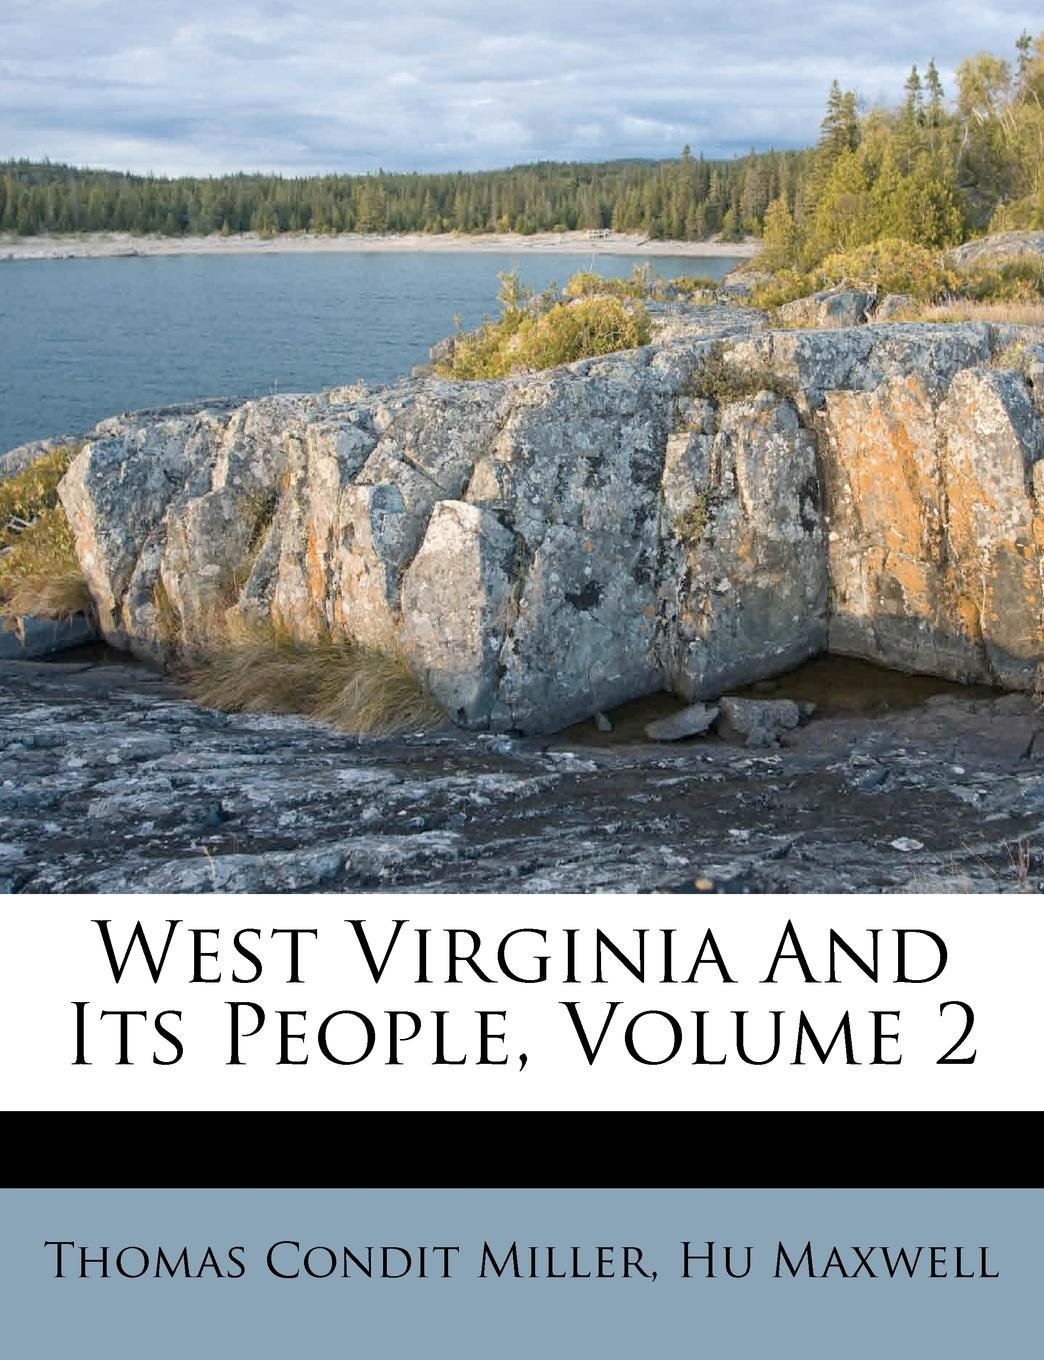 West Virginia And Its People, Volume 2 PDF